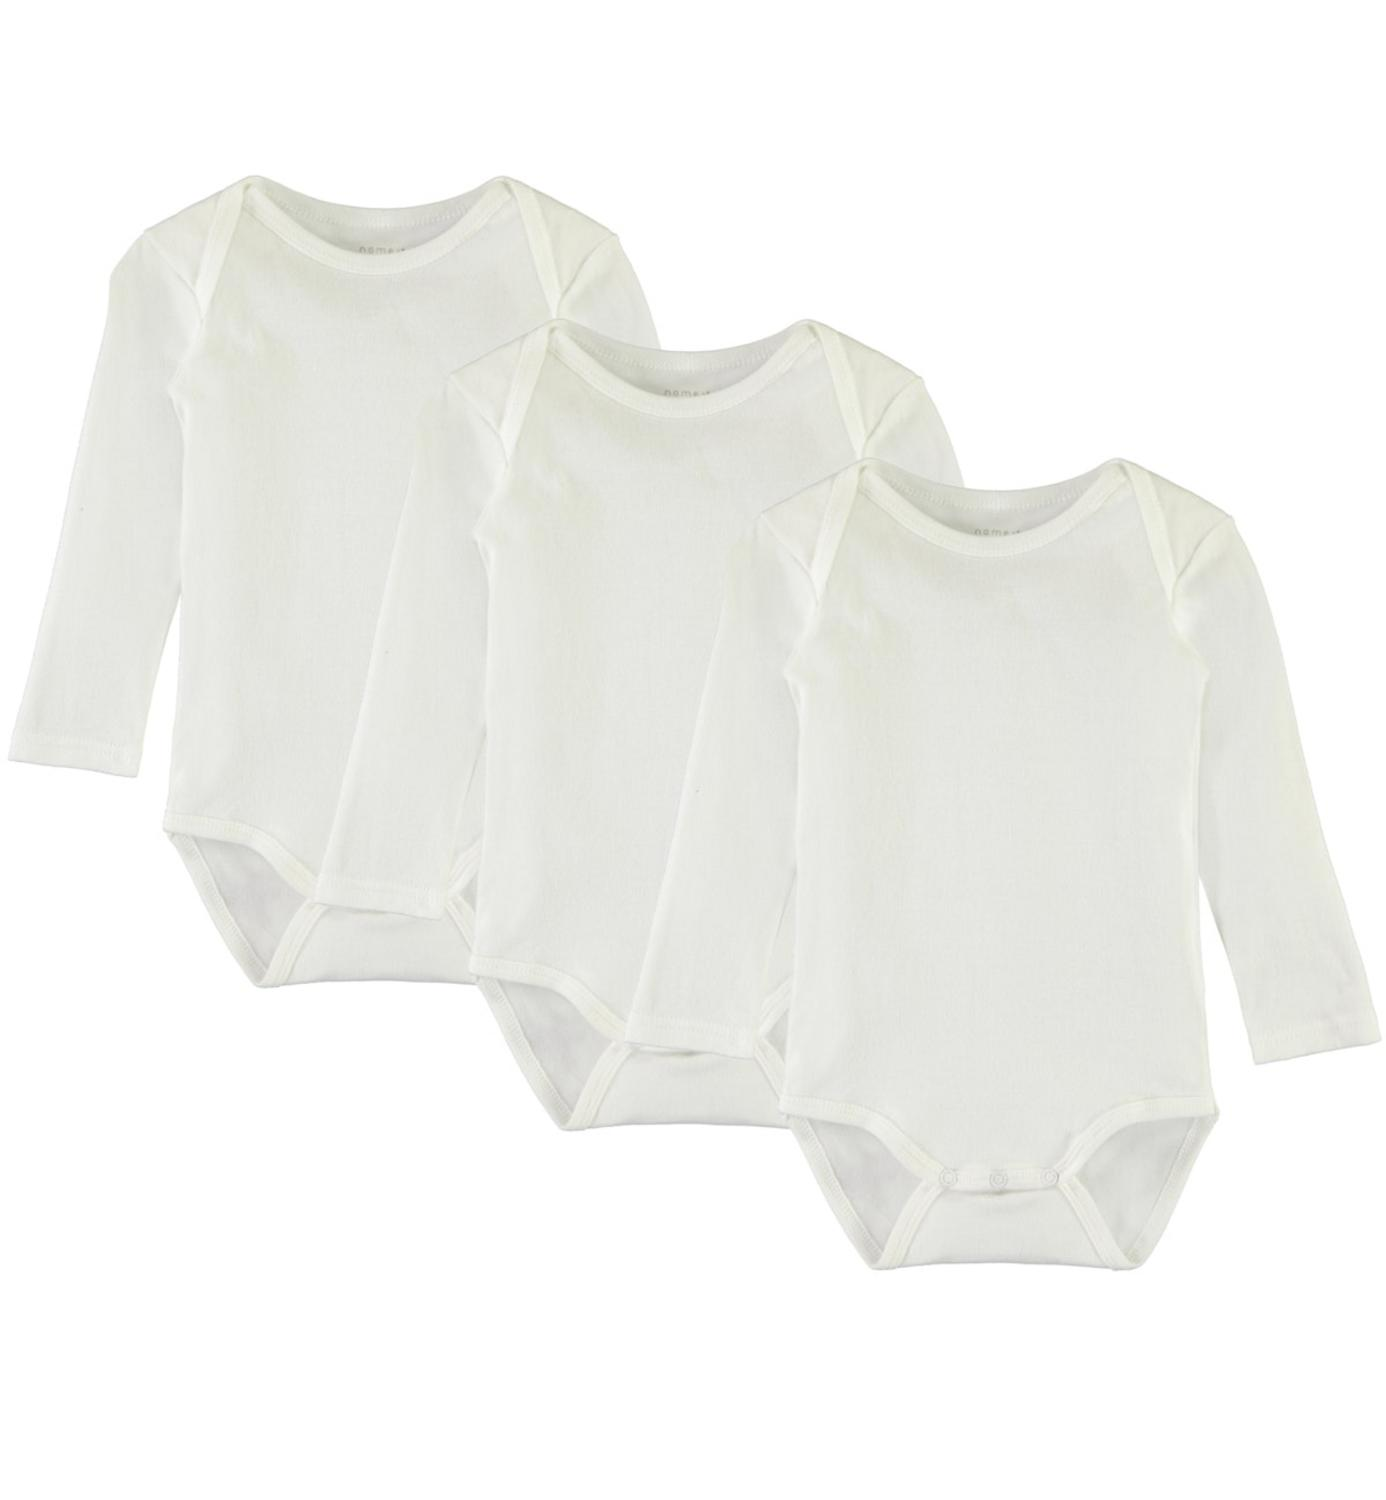 NBNBODY 3P LS SOLID WHITE NOOS